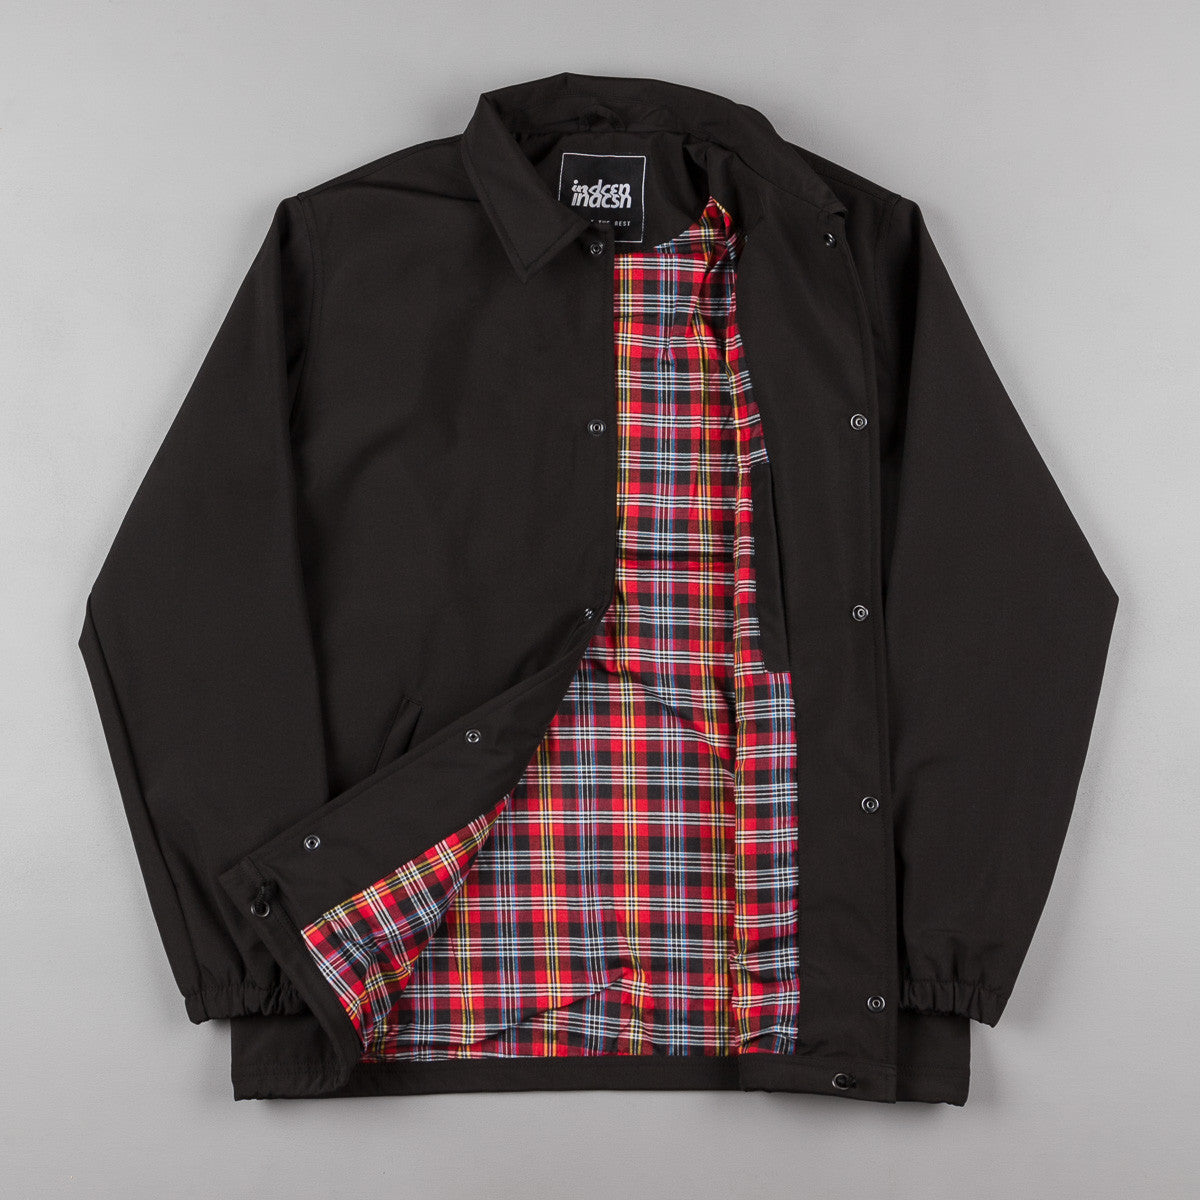 Indcsn Harrington Coach Jacket - Black